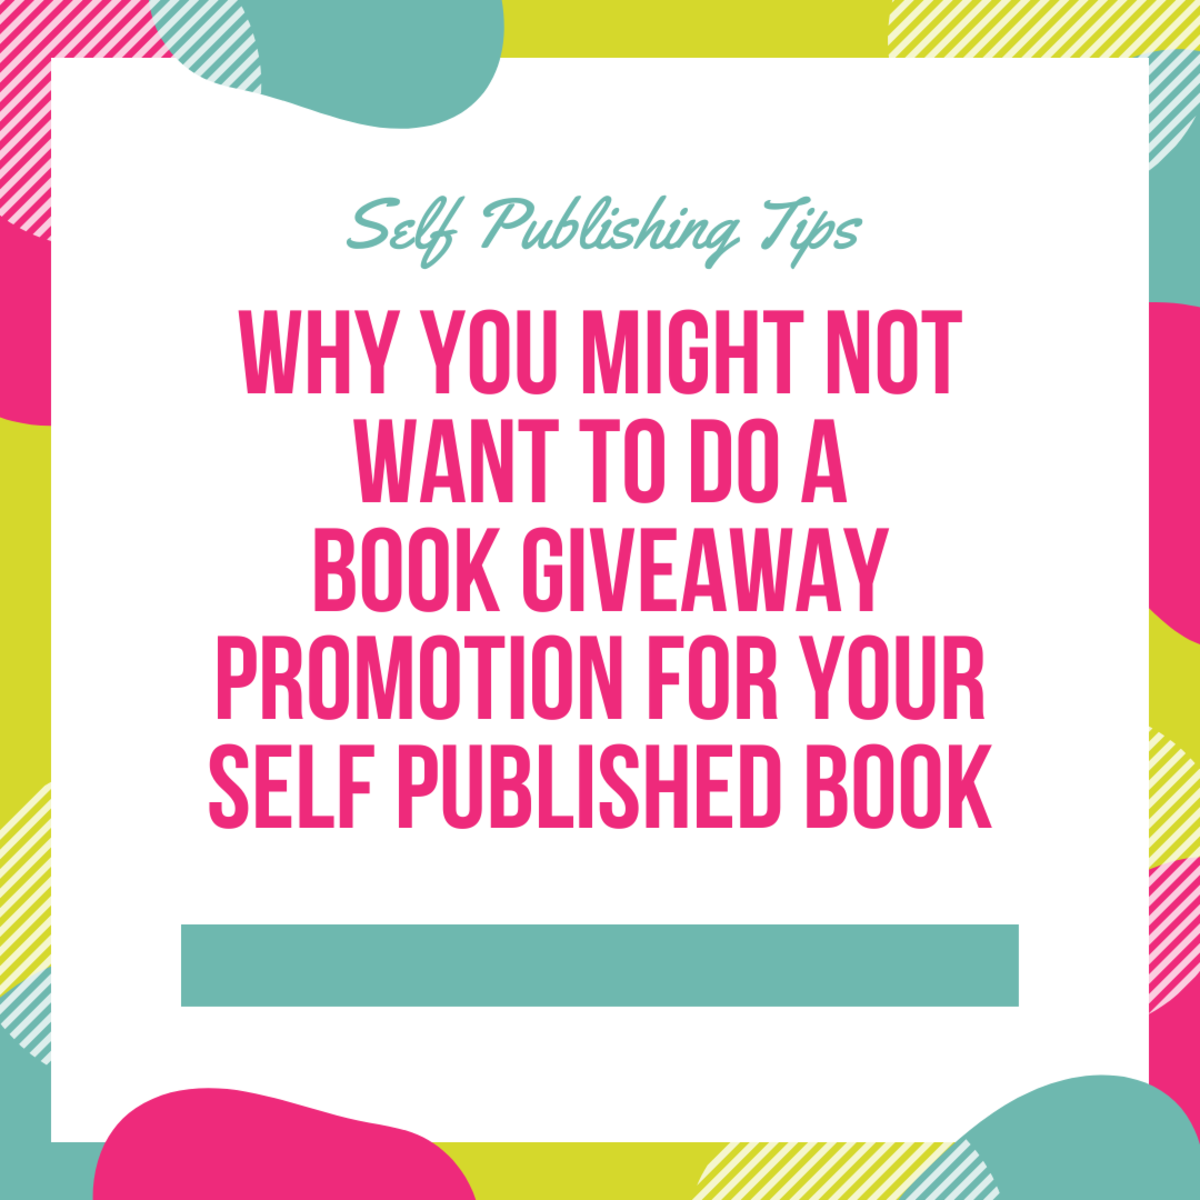 Why You Might Not Want to Do a Book Giveaway Promotion for Your Self Published Book